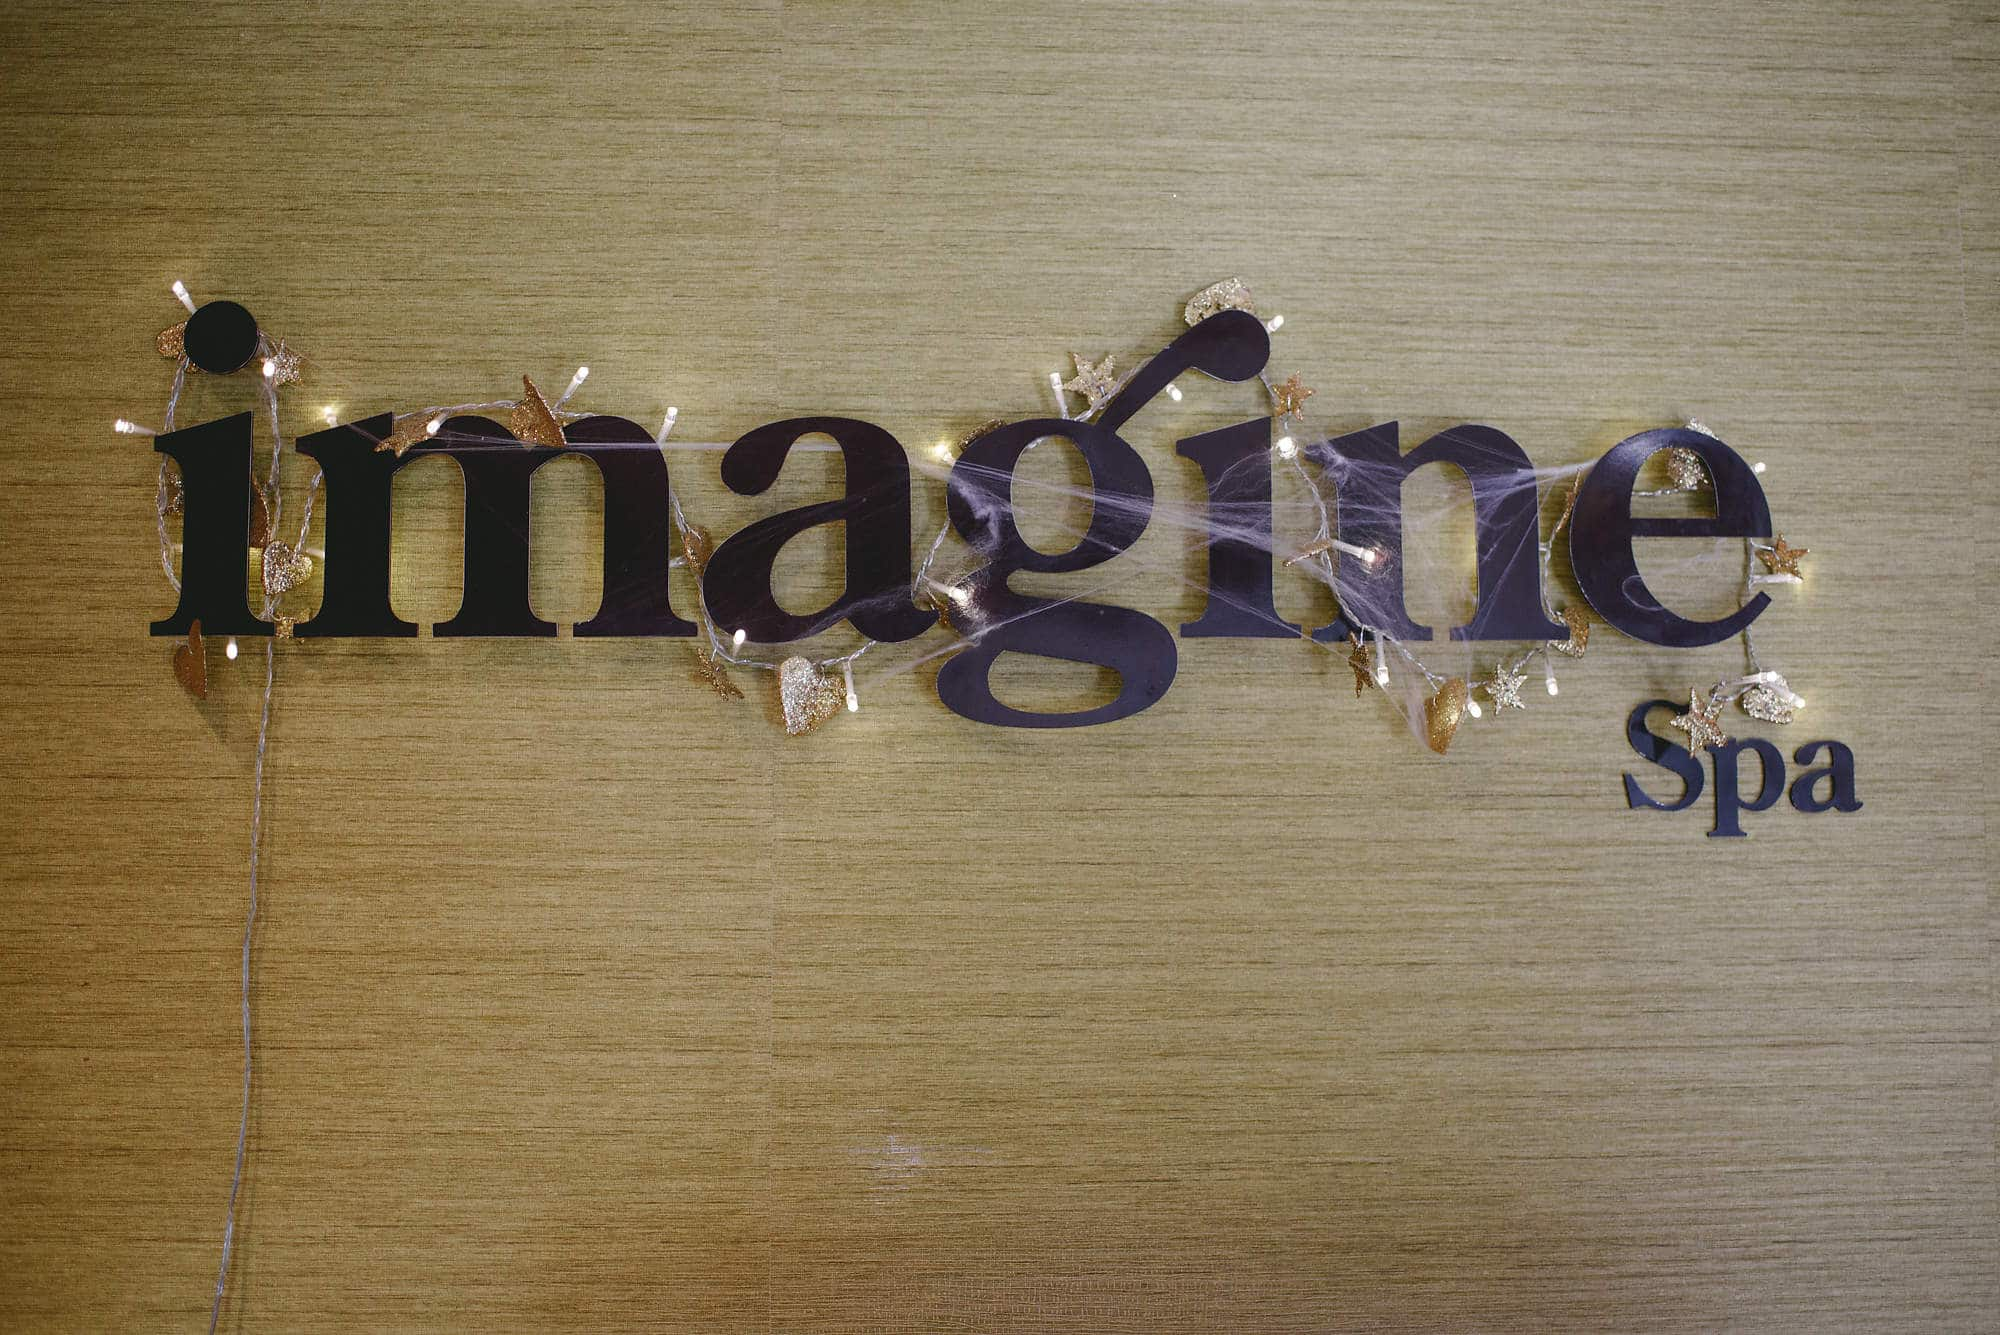 imagine-norwich-spa-17